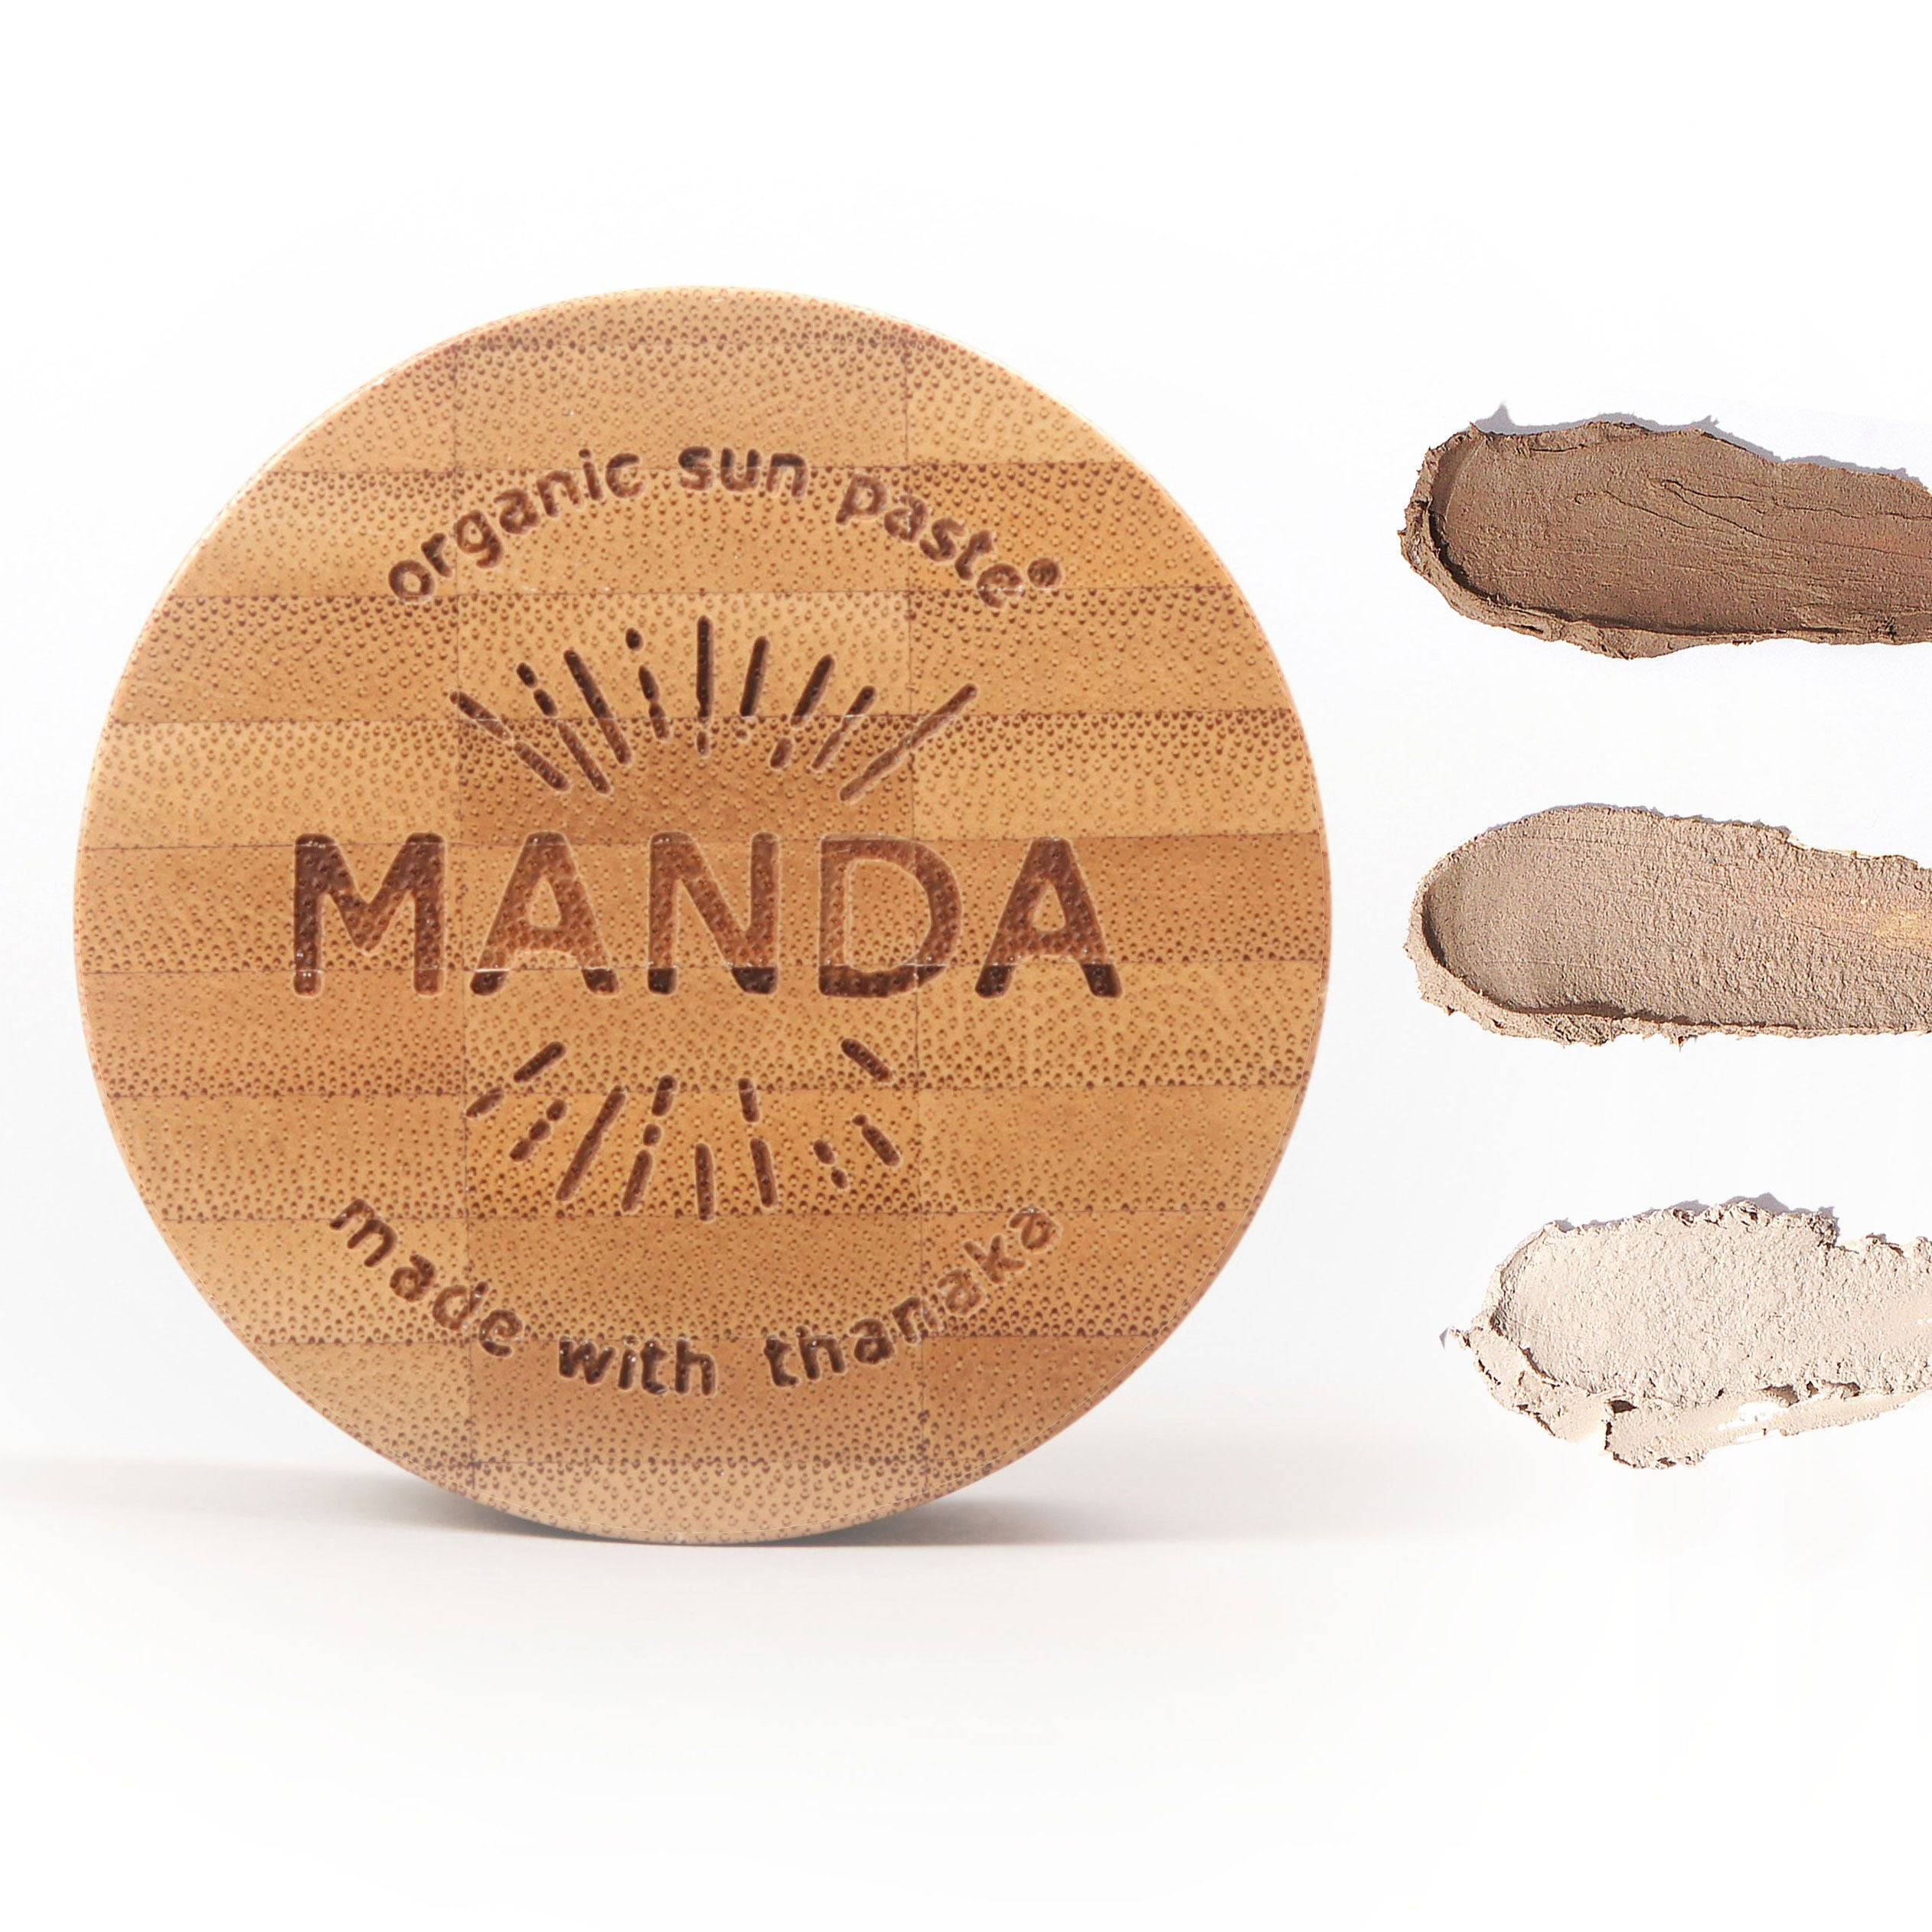 MANDA Organic Sun Paste (SPF 50) - 40 grams